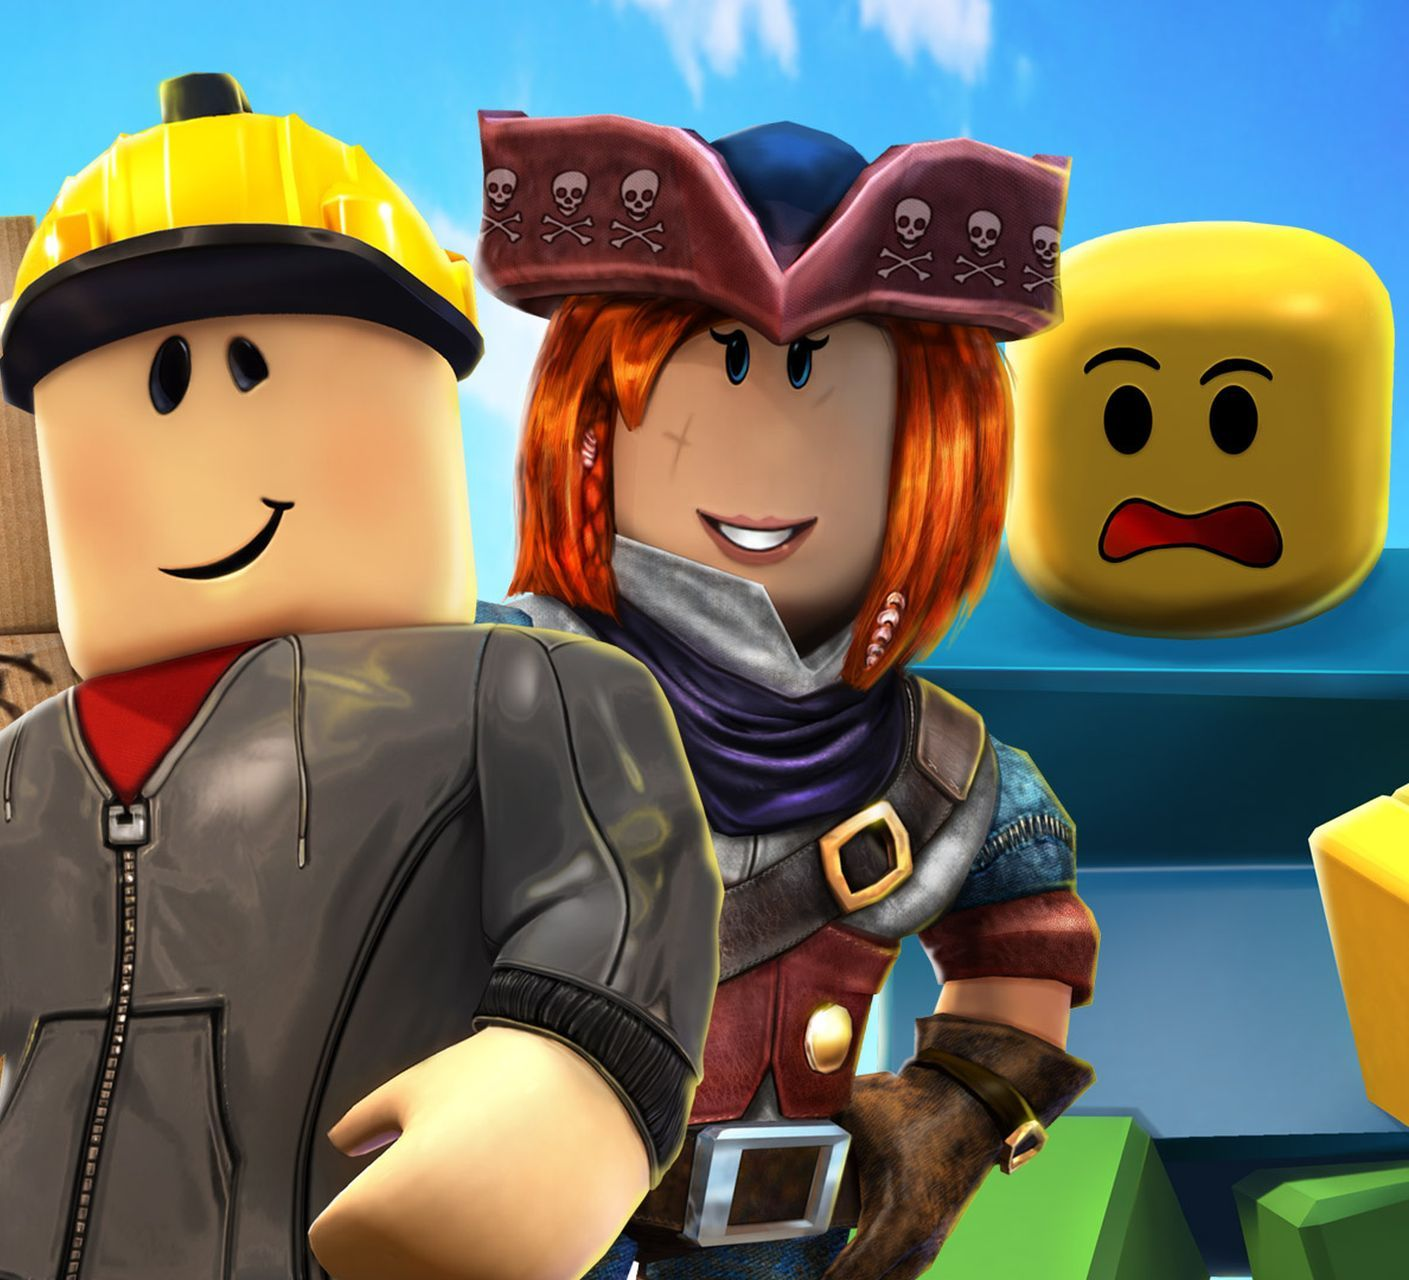 Roblox Wallpaper For Tablet Mobile Desktop Set As Background